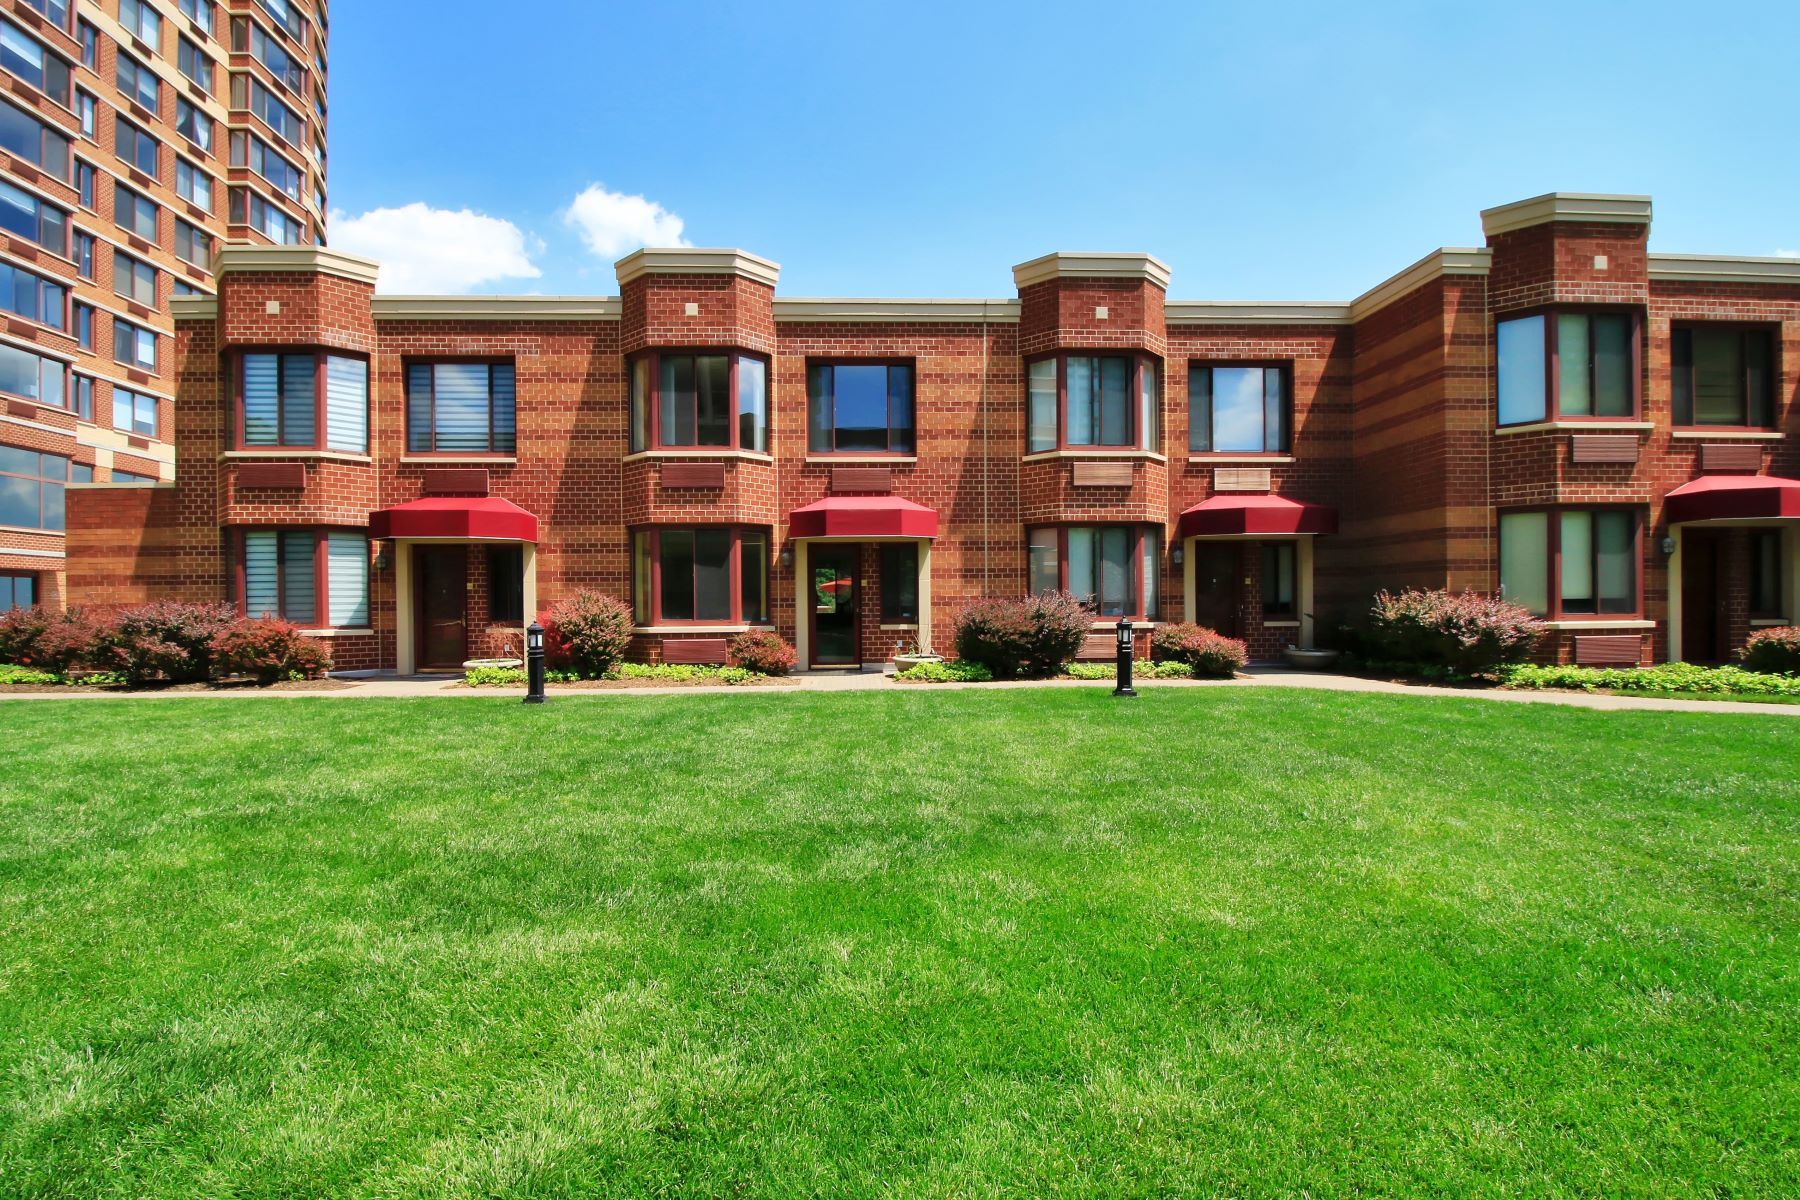 Condominium for Sale at Private and spacious townhouse in The Palisades! 100 Old Palisade Rd #PL19 Fort Lee, New Jersey, 07024 United States